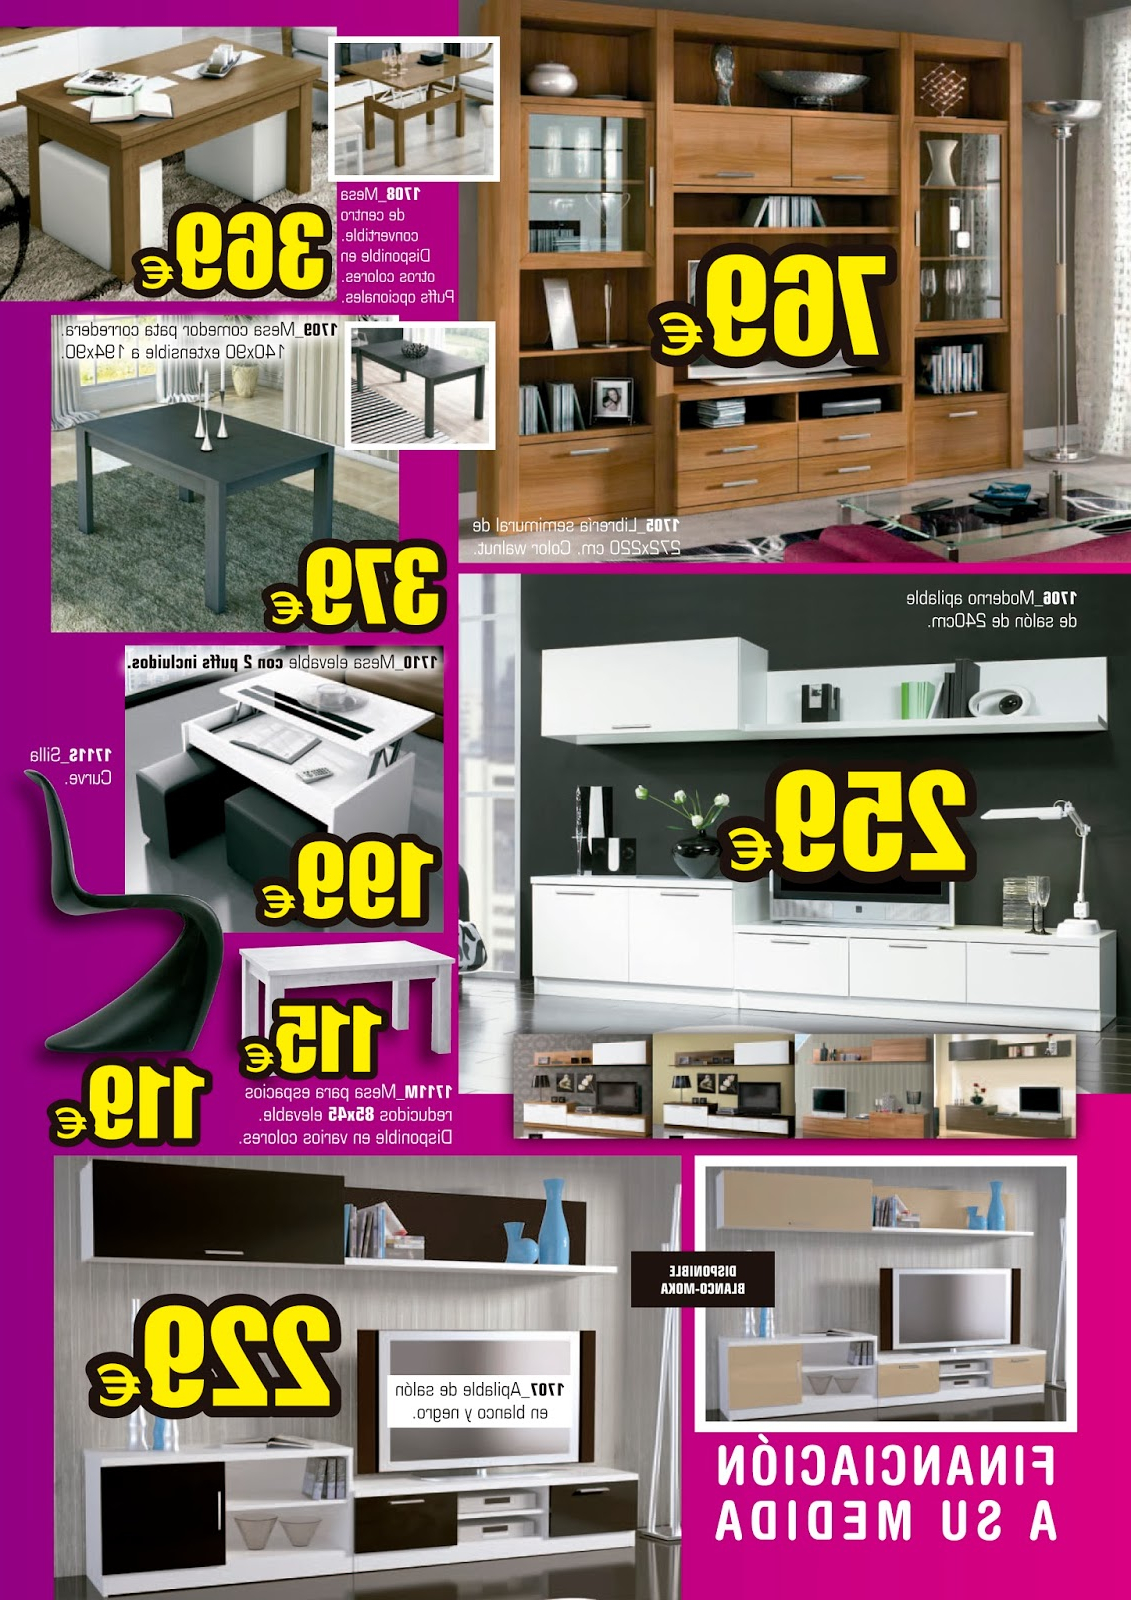 Muebles toscapino Ipdd Muebles toscapino Folletos